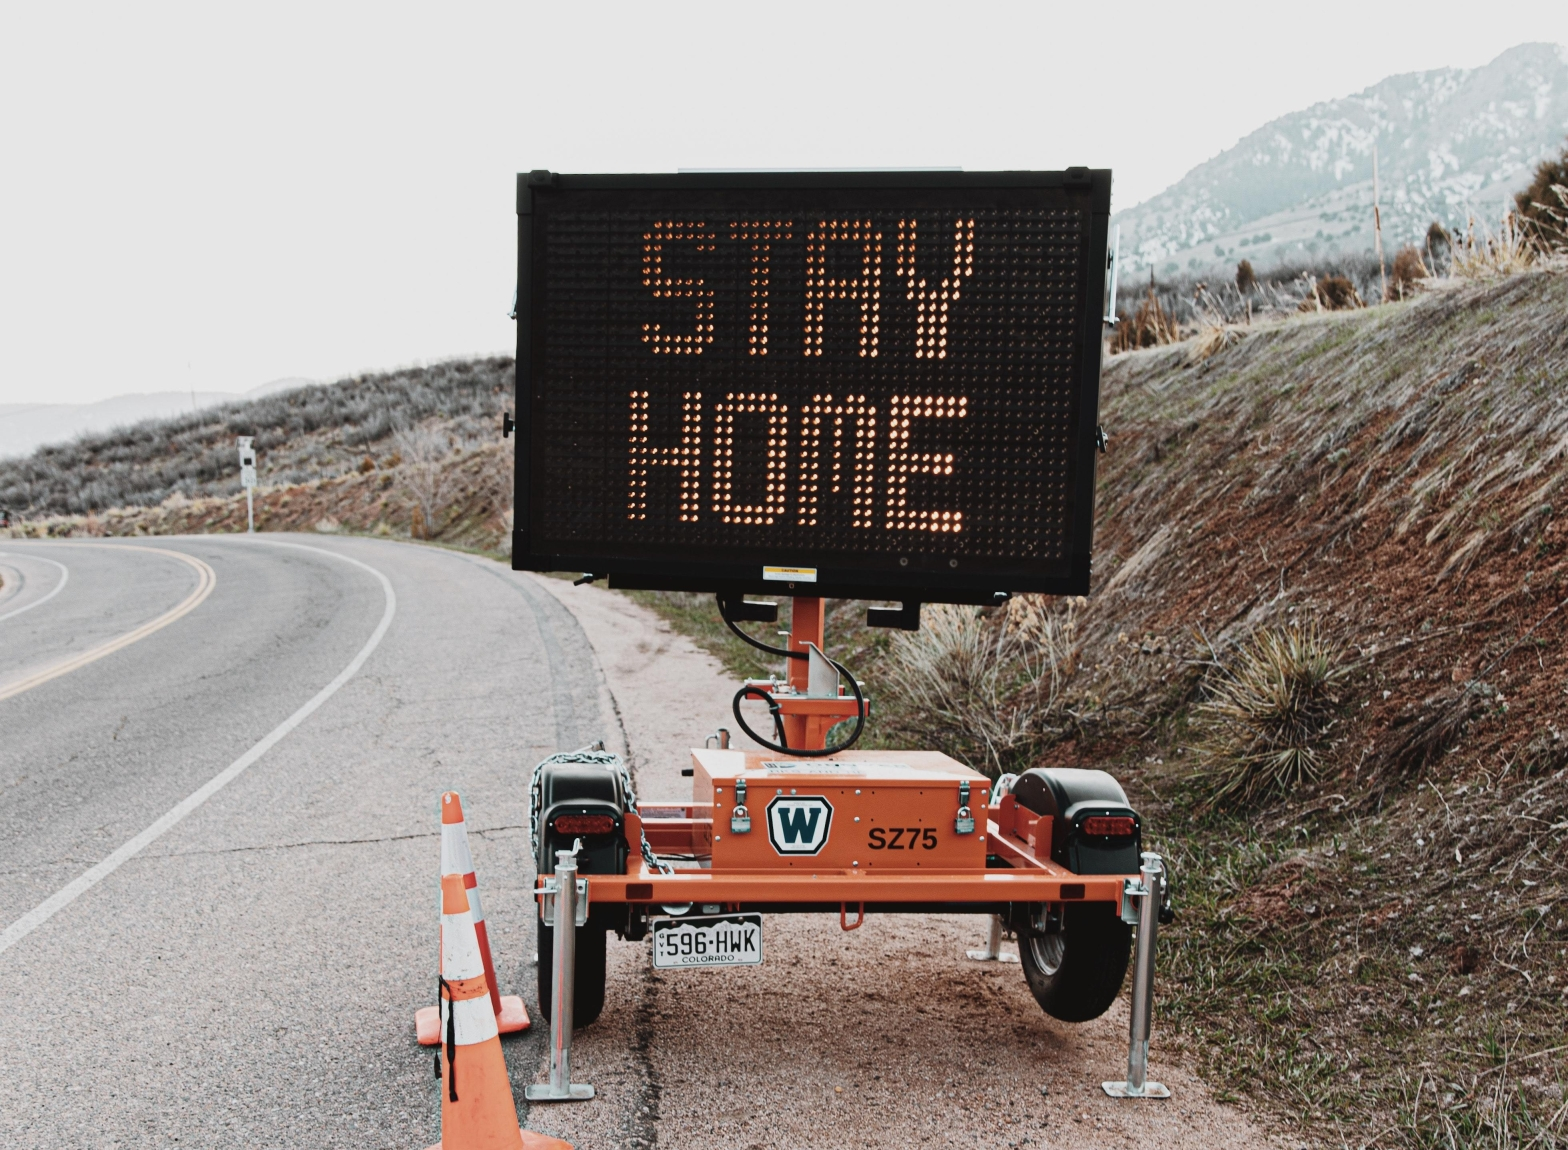 Stay Home on street construction sign